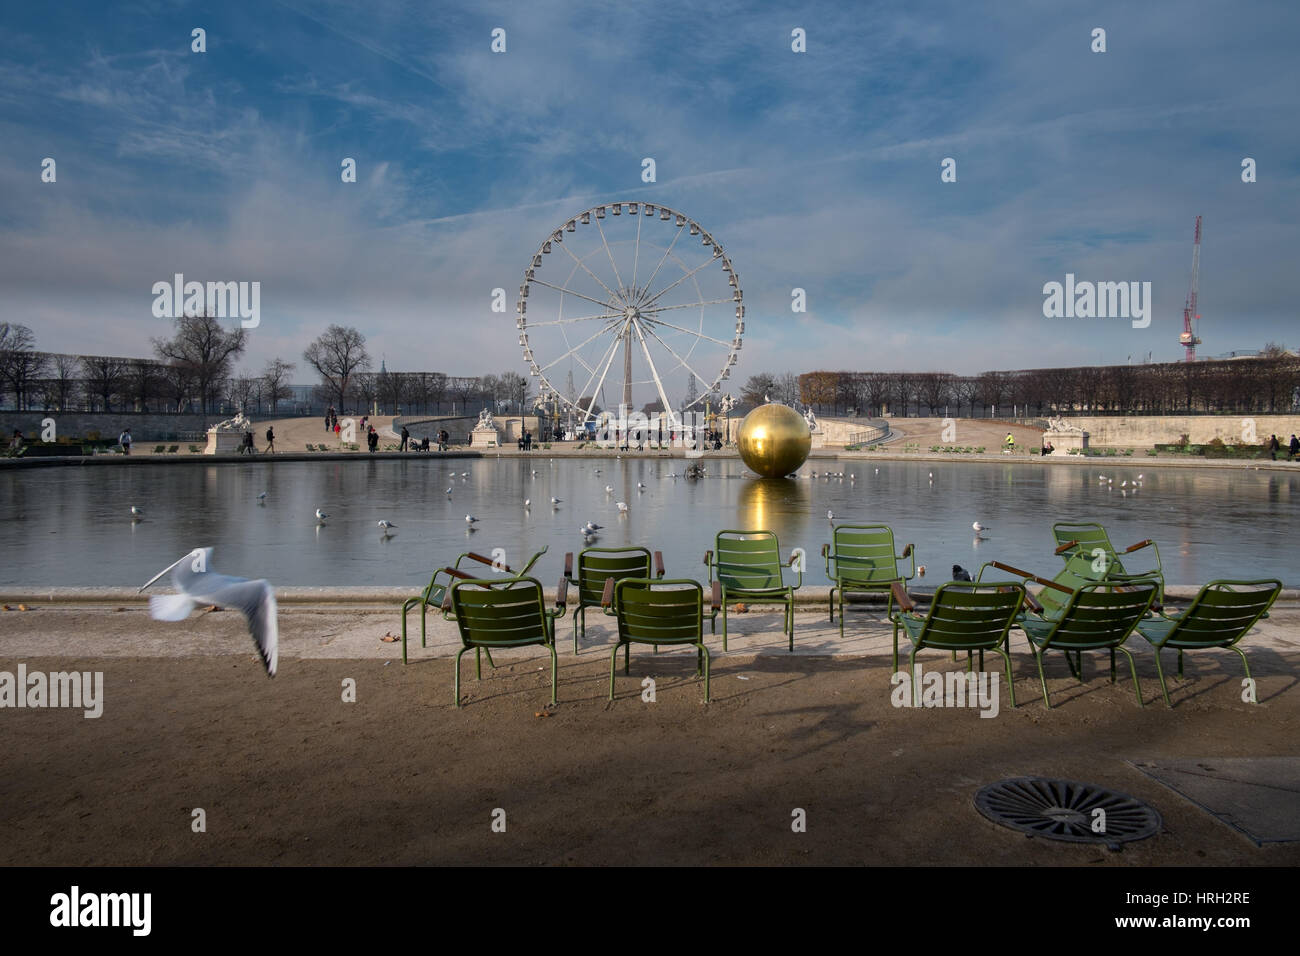 Winter sun at Grand bassin octogonal at the Jardin des Tuileries, overlooked by the Ferris Wheel, Paris, France - Stock Image